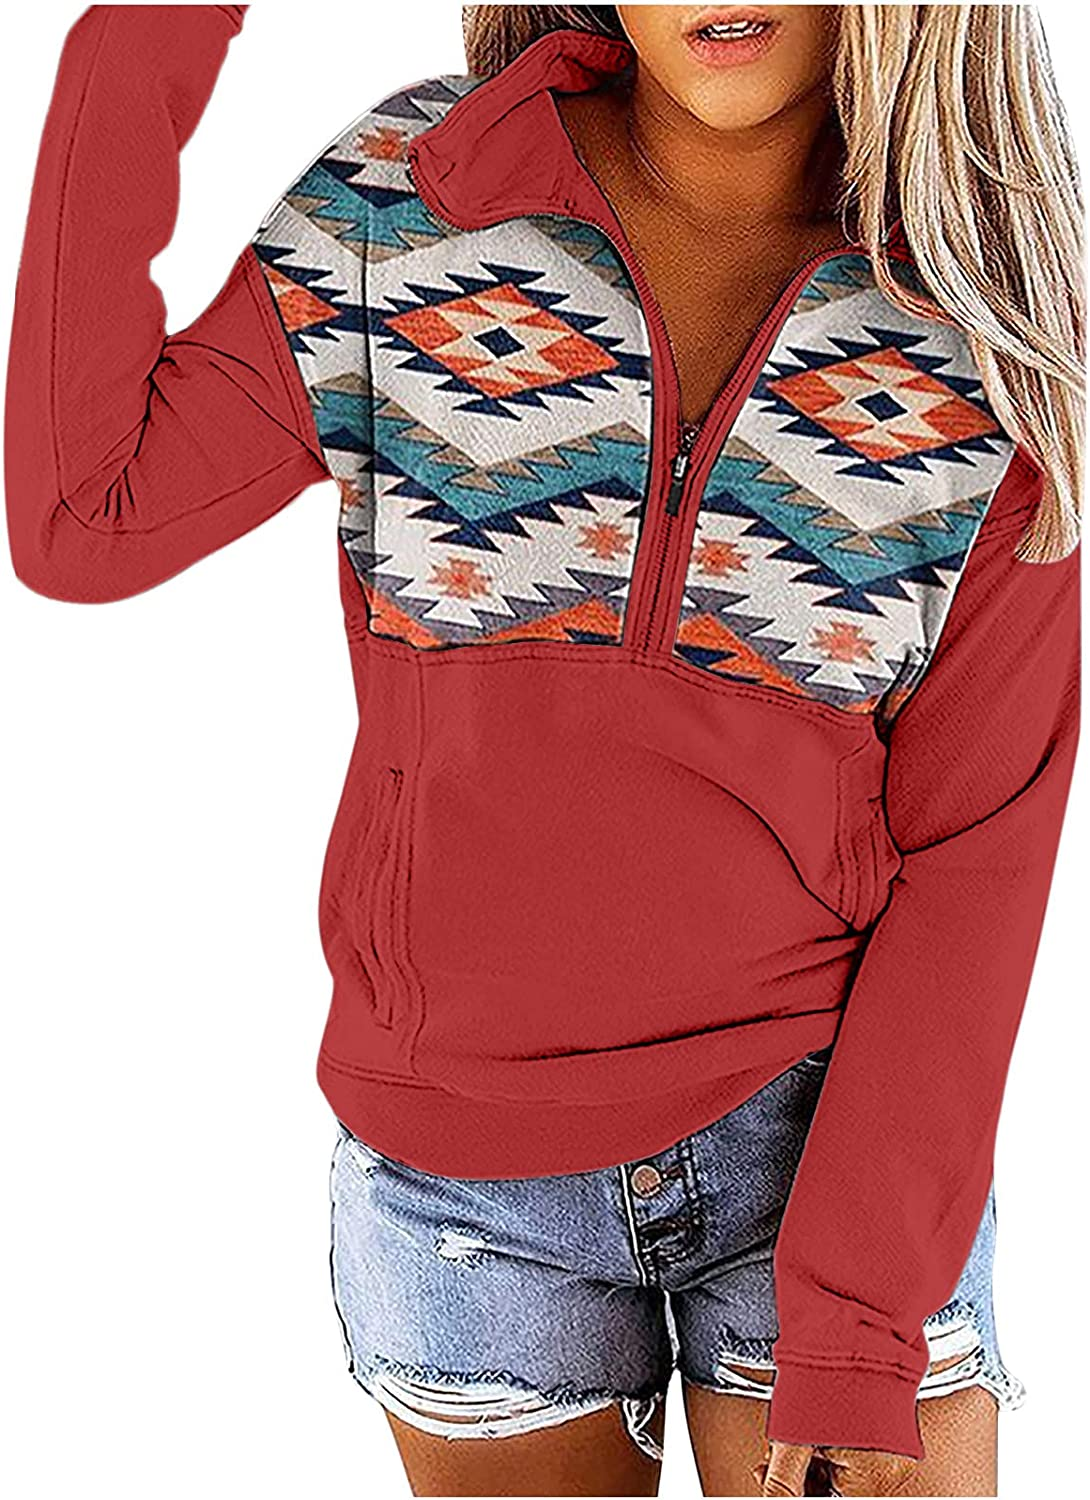 Bravetoshop Sweatshirts for Women Casual Lightweight Lapel Zipper Long Sleeve Pullover Tops with Pockets